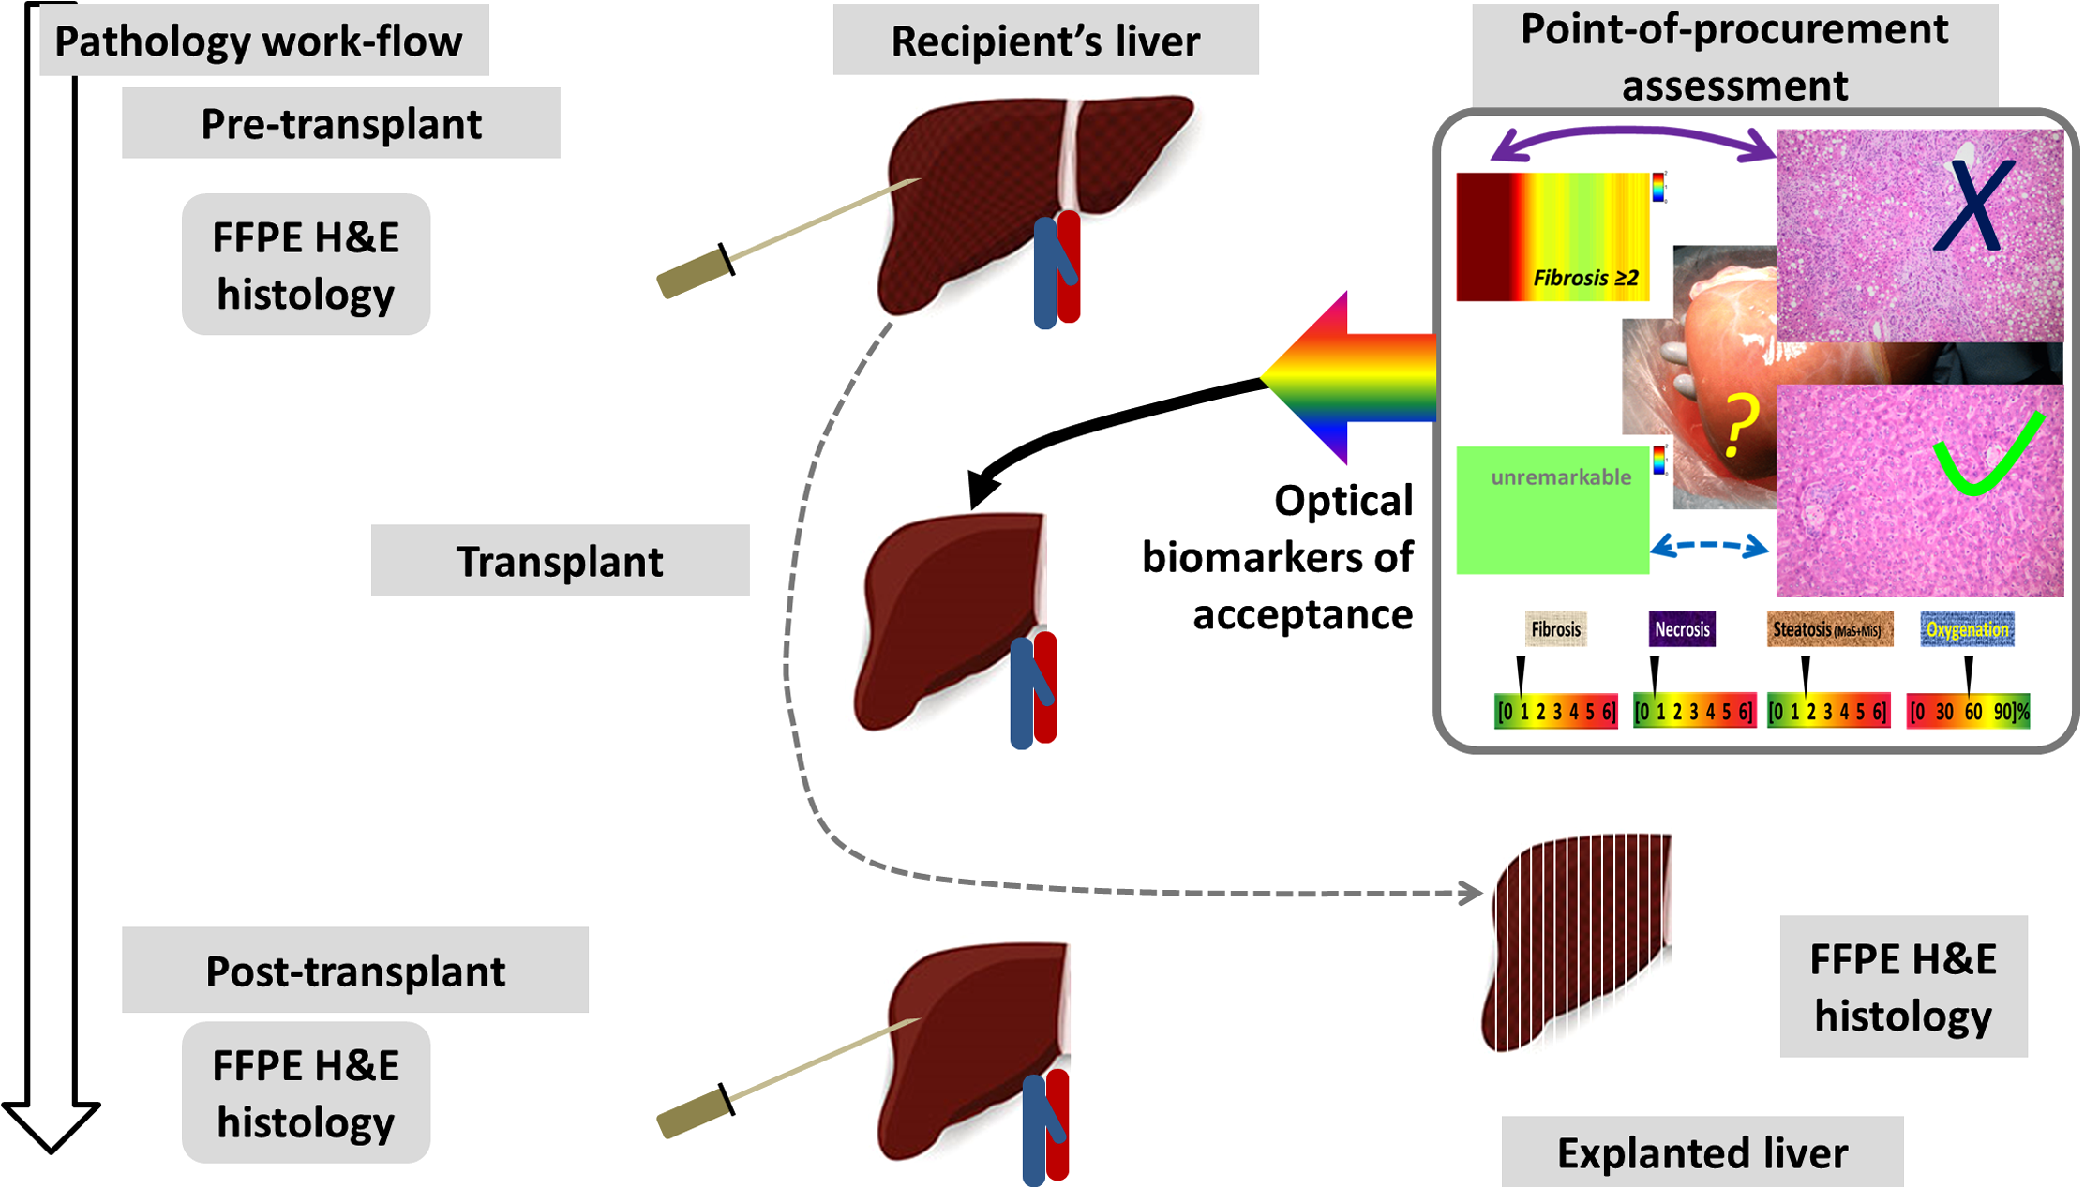 Perspective Review On Solid Organ Transplant Needs In Point Of Care 2009 Ford F 150 Wiring Schematic Mas Probing Optical Biomarkers The Imagery And Tissue Features Corresponding To A Few Significant Pathological Endpoints Are Delivered Real Time As